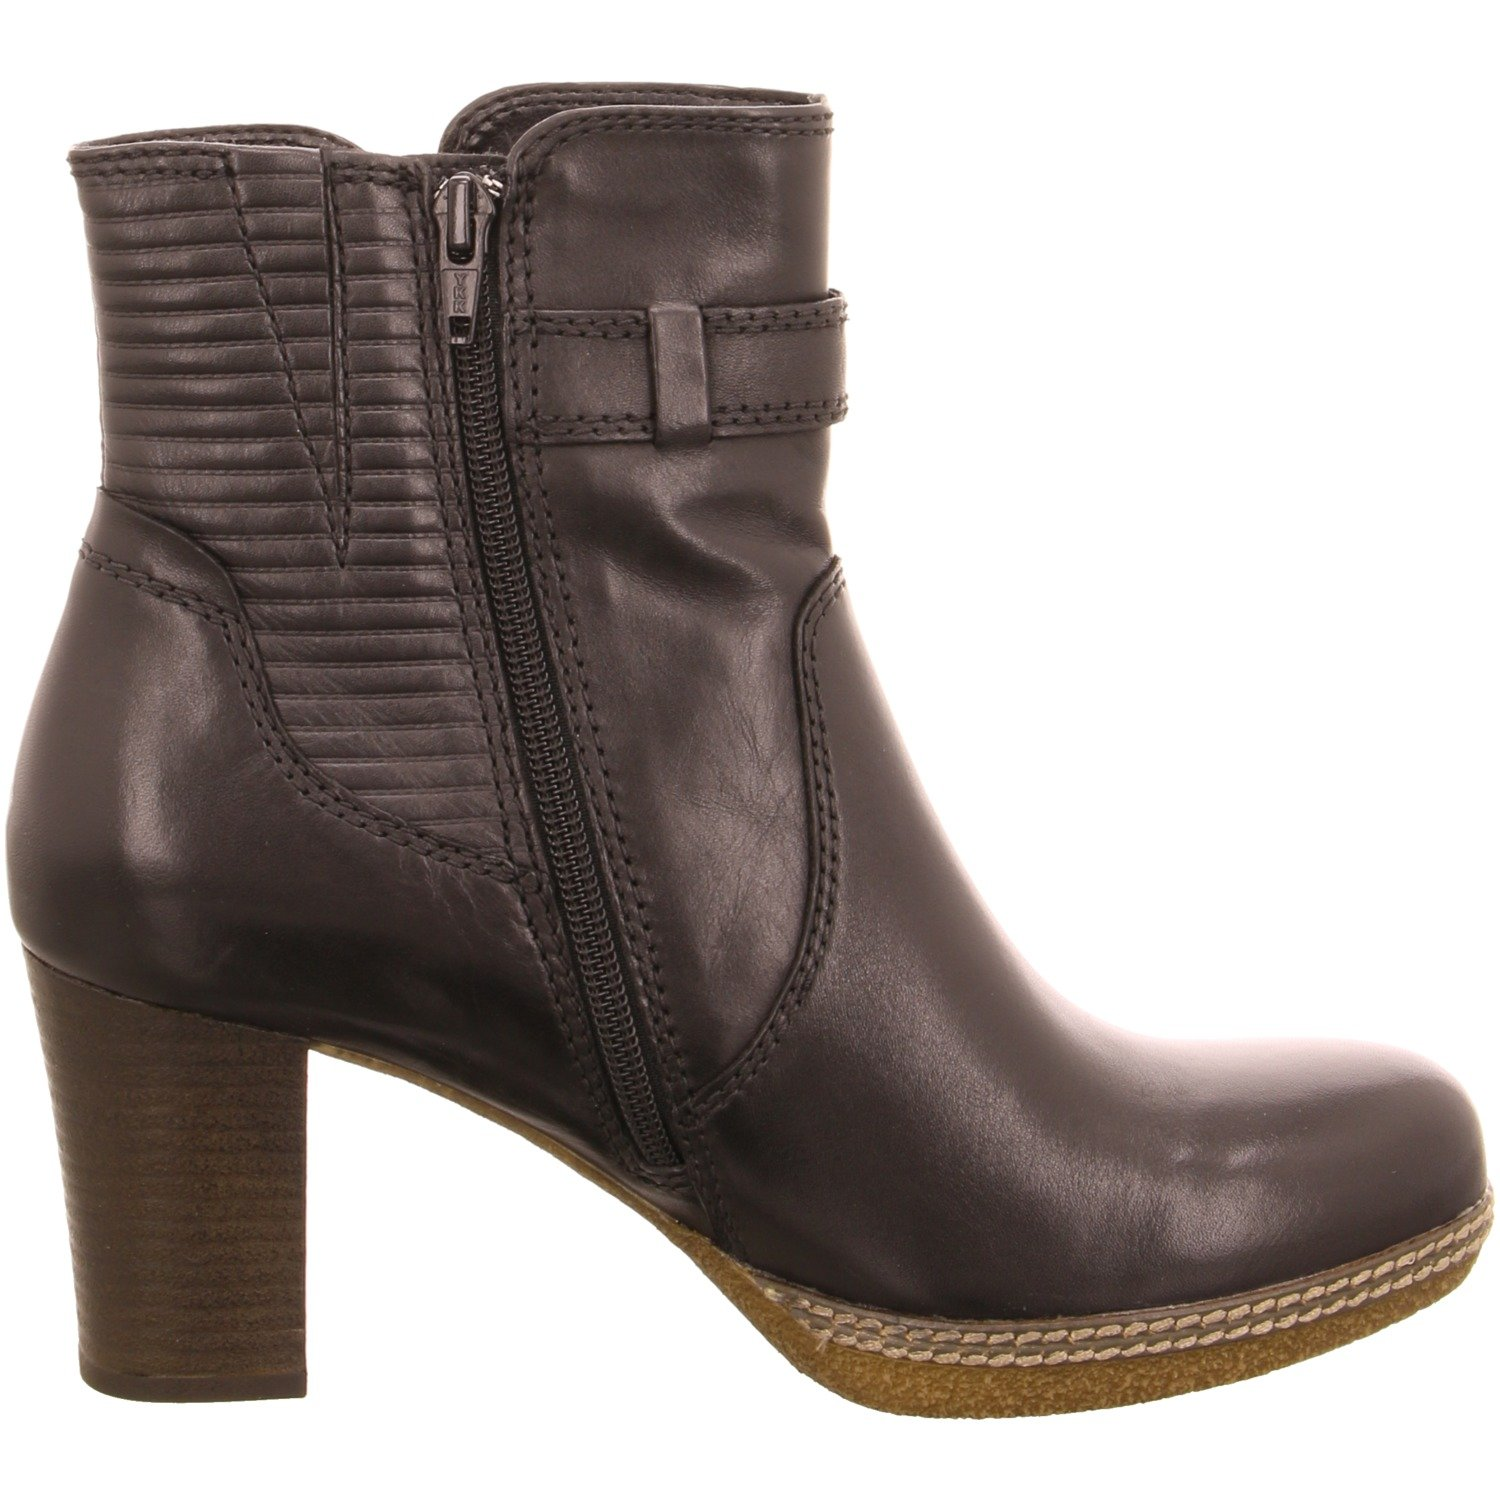 Simmons W17 Gabor Heeled Ankle Boot 8 Tan 0AuT23